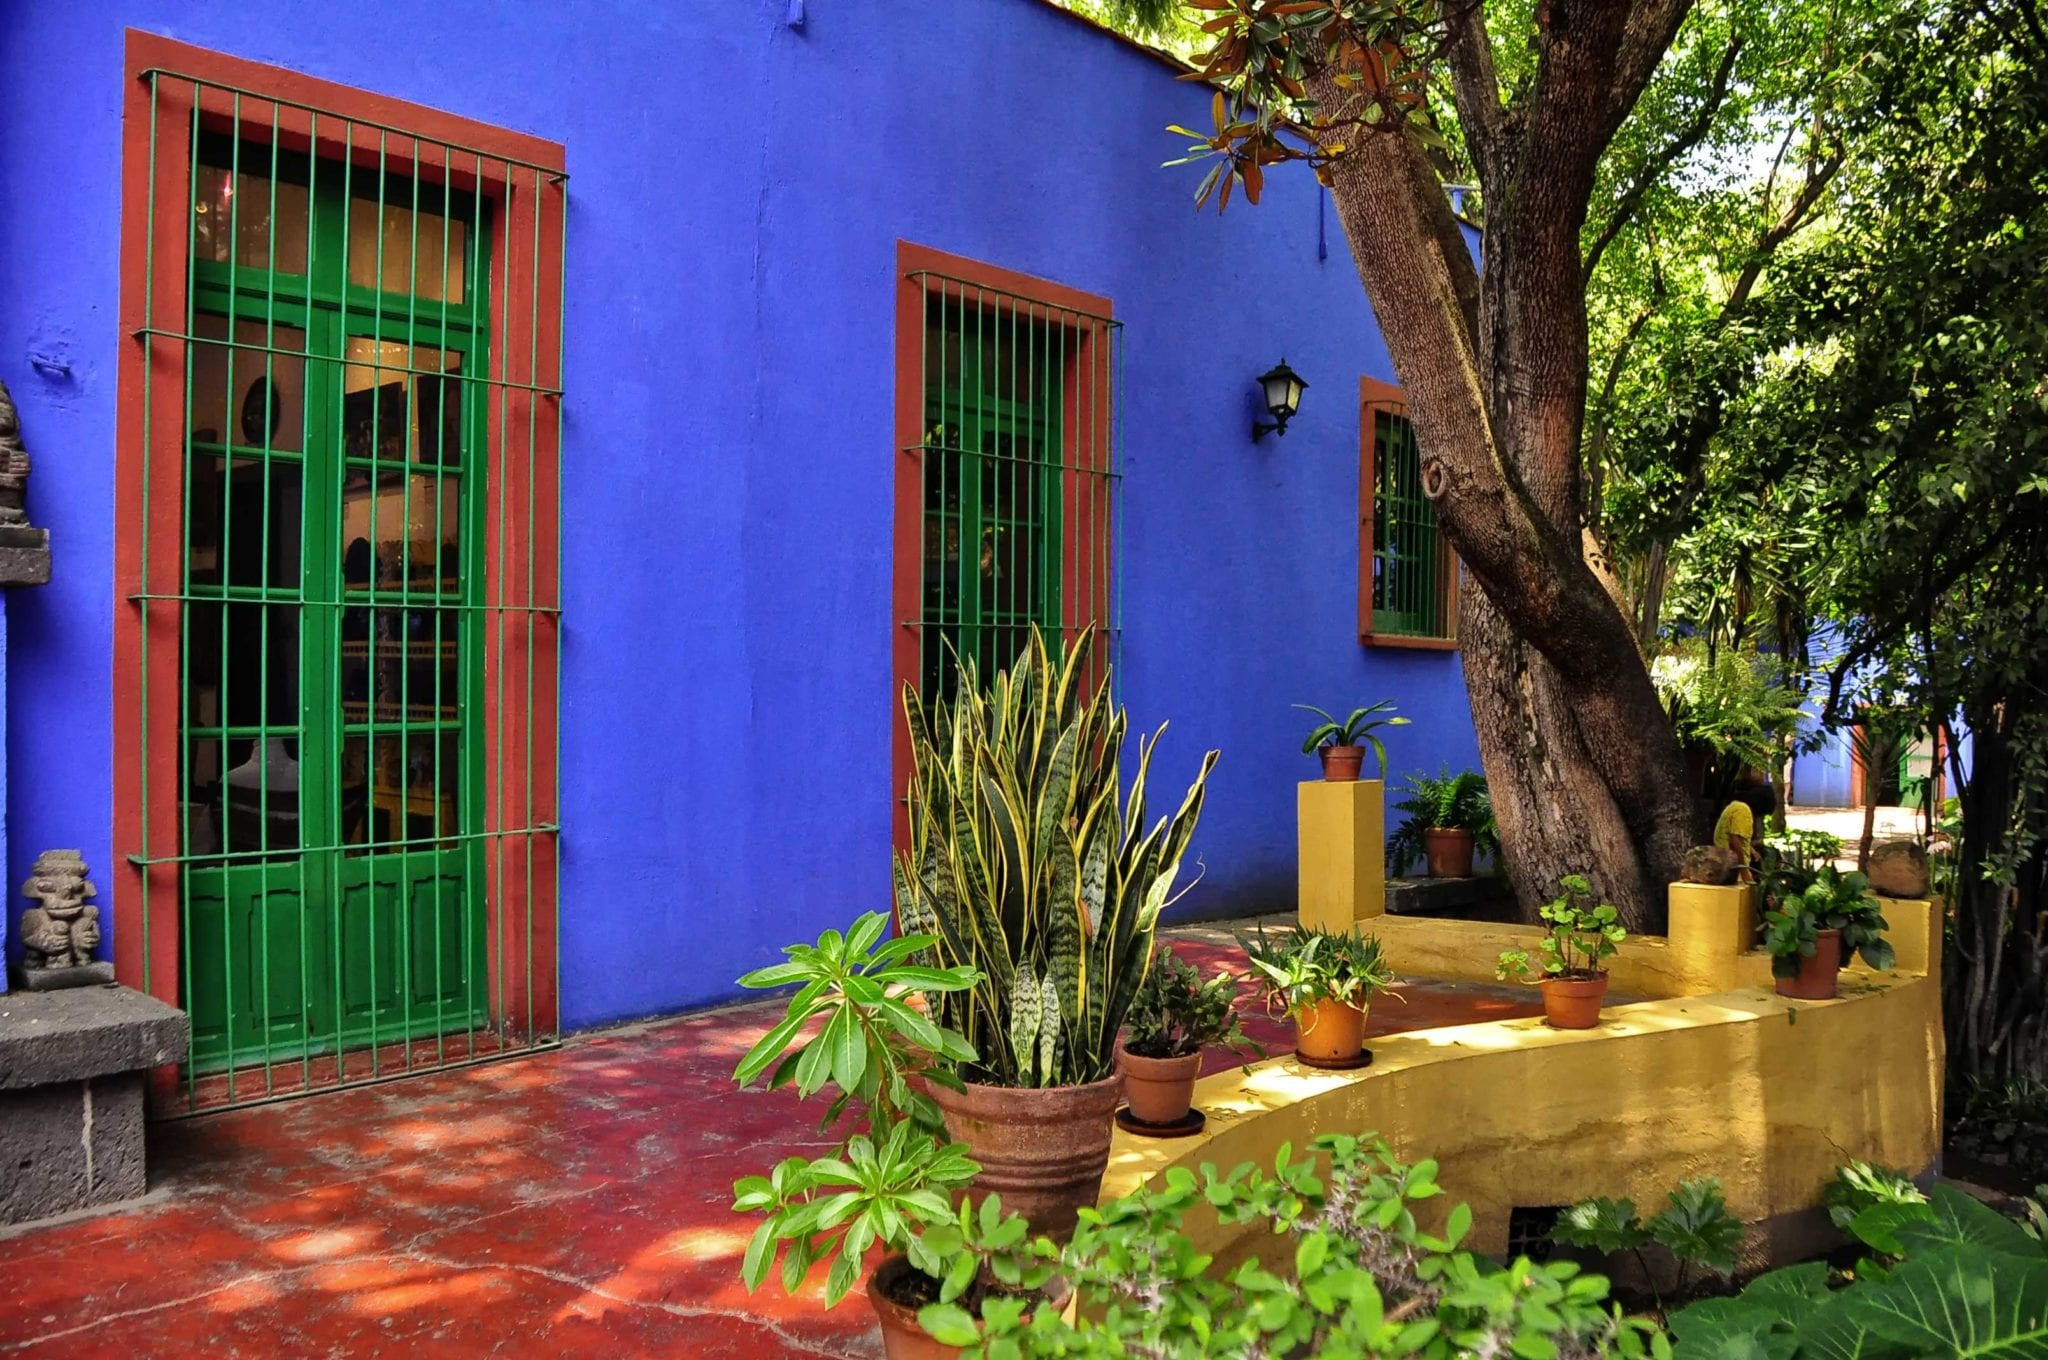 Frida Kahlo's Blue House in Mexico City | © Rod Waddington/Wikimedia